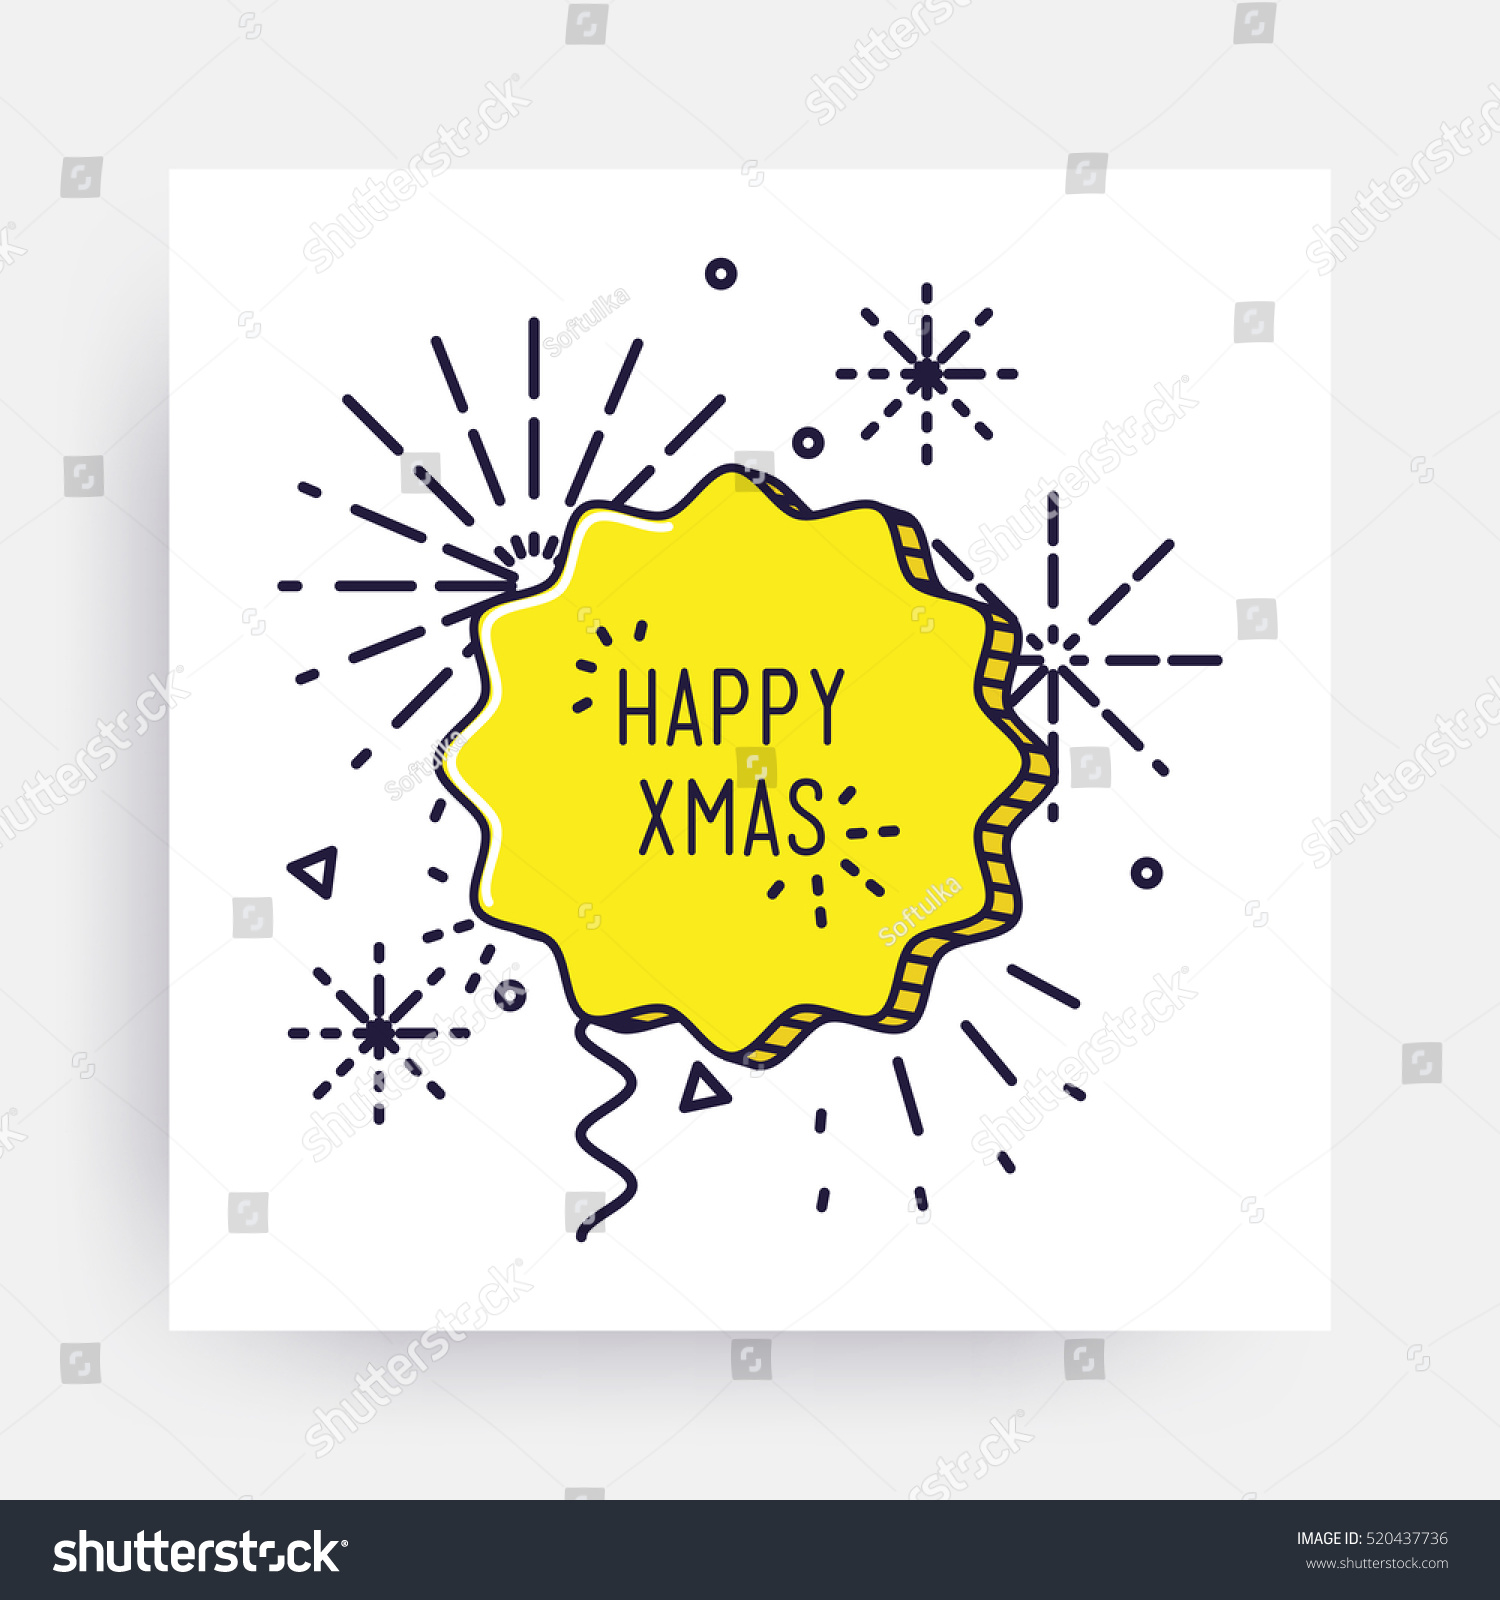 Merry Christmas New Year Design Linear Stock Vector Royalty Free